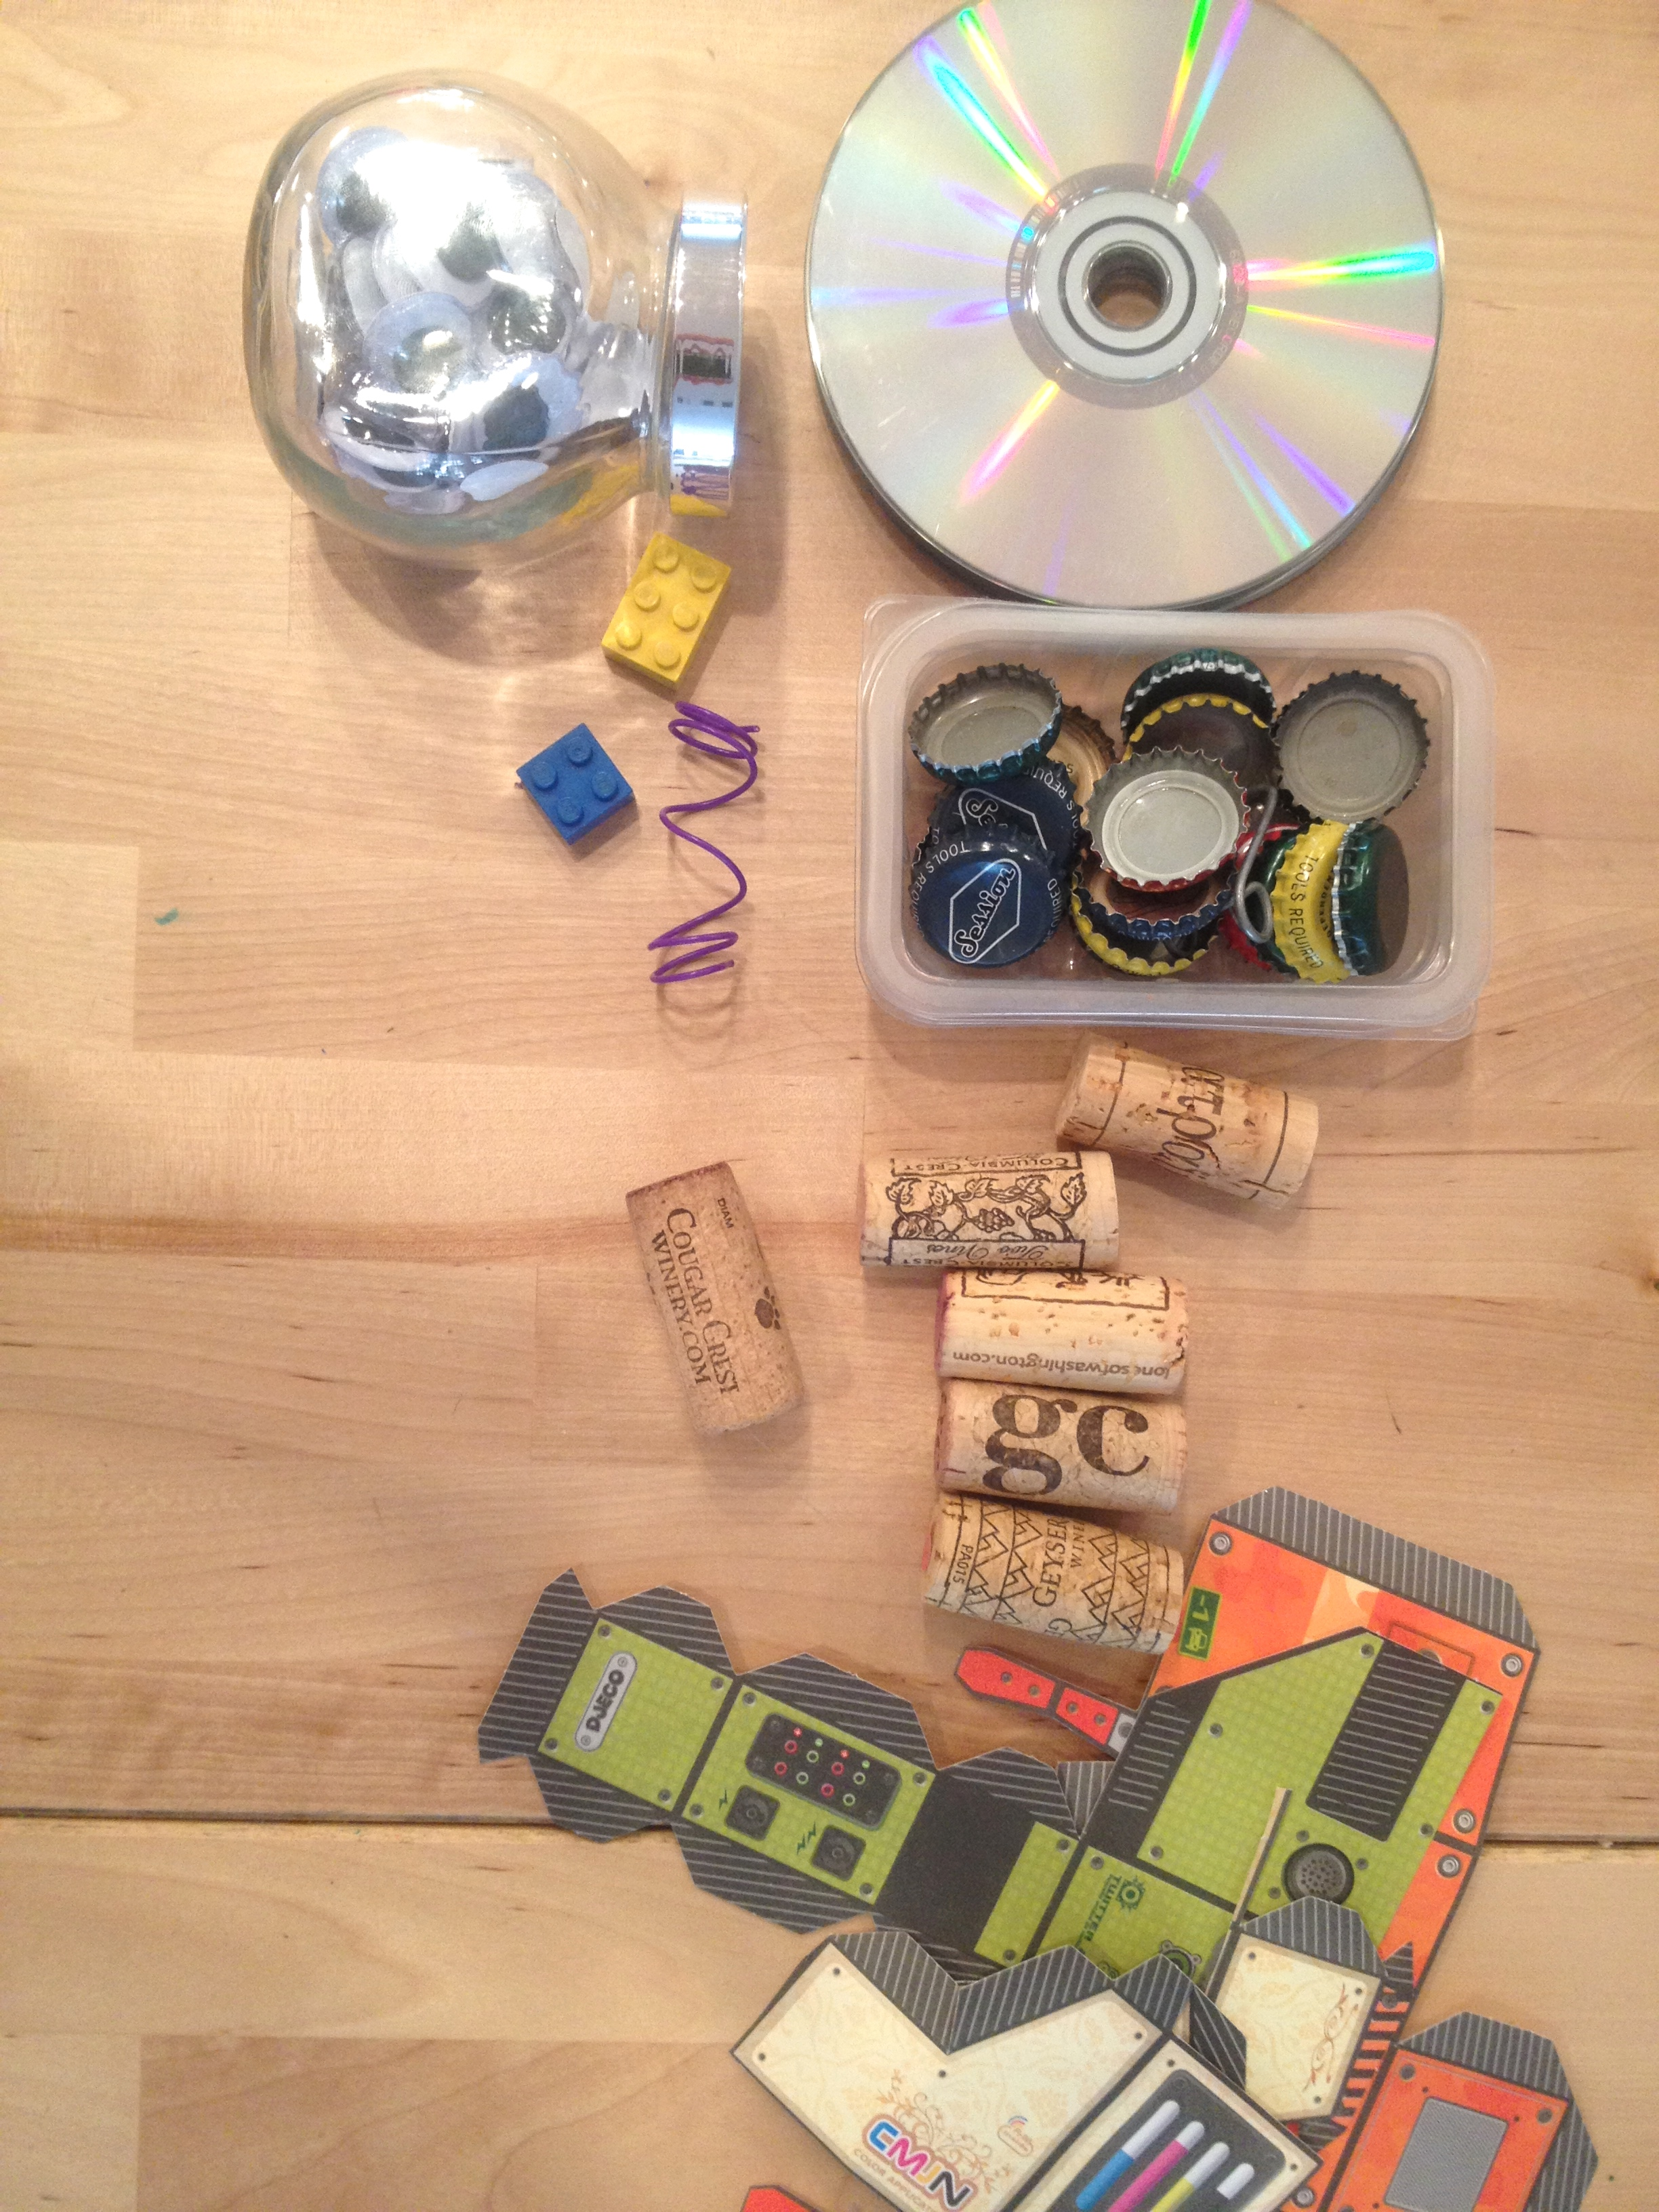 Wiggly eyes, old cds, odd and ends, bits and pieces can help bring your robot to life. Hot glue gun required? YES!!!